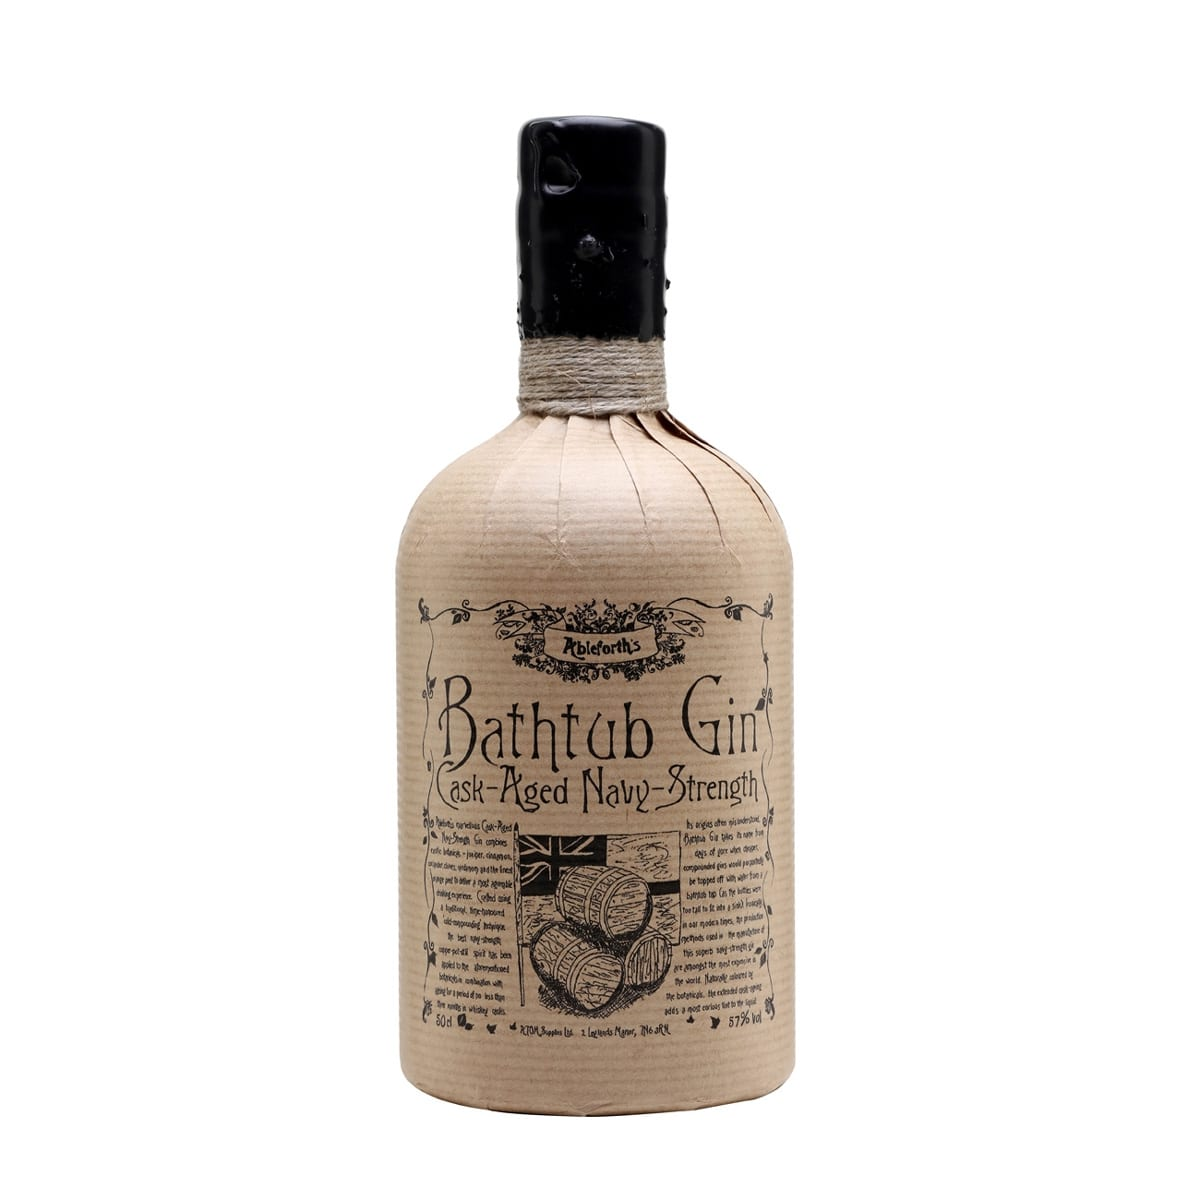 Bathtub Gin – Cask-Aged Navy-Strength